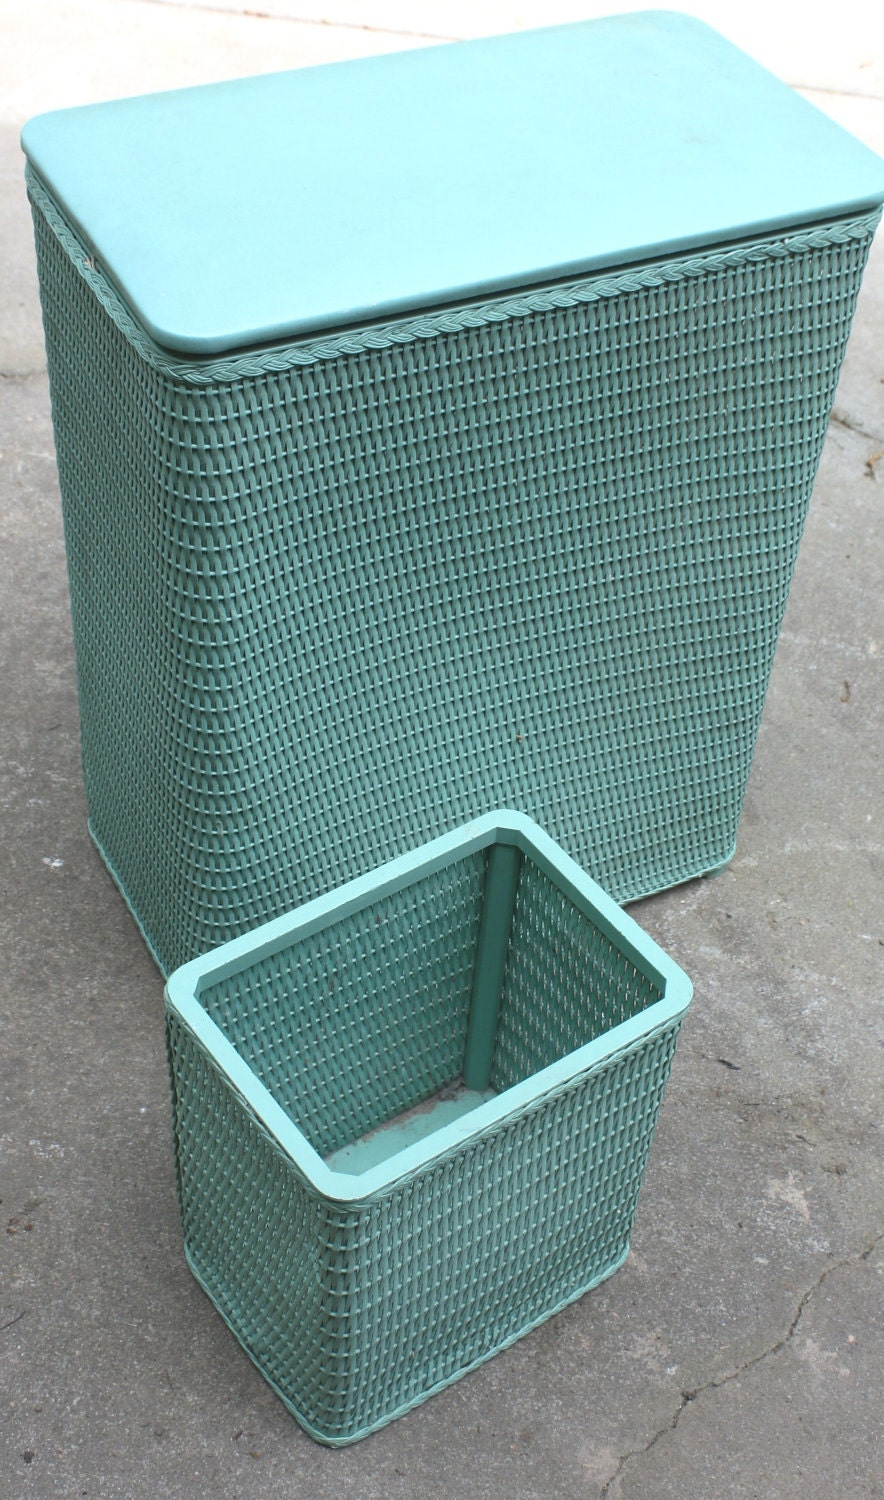 Retro vintage wicker teal waste basket hamper set bathroom for Waste baskets for bathroom